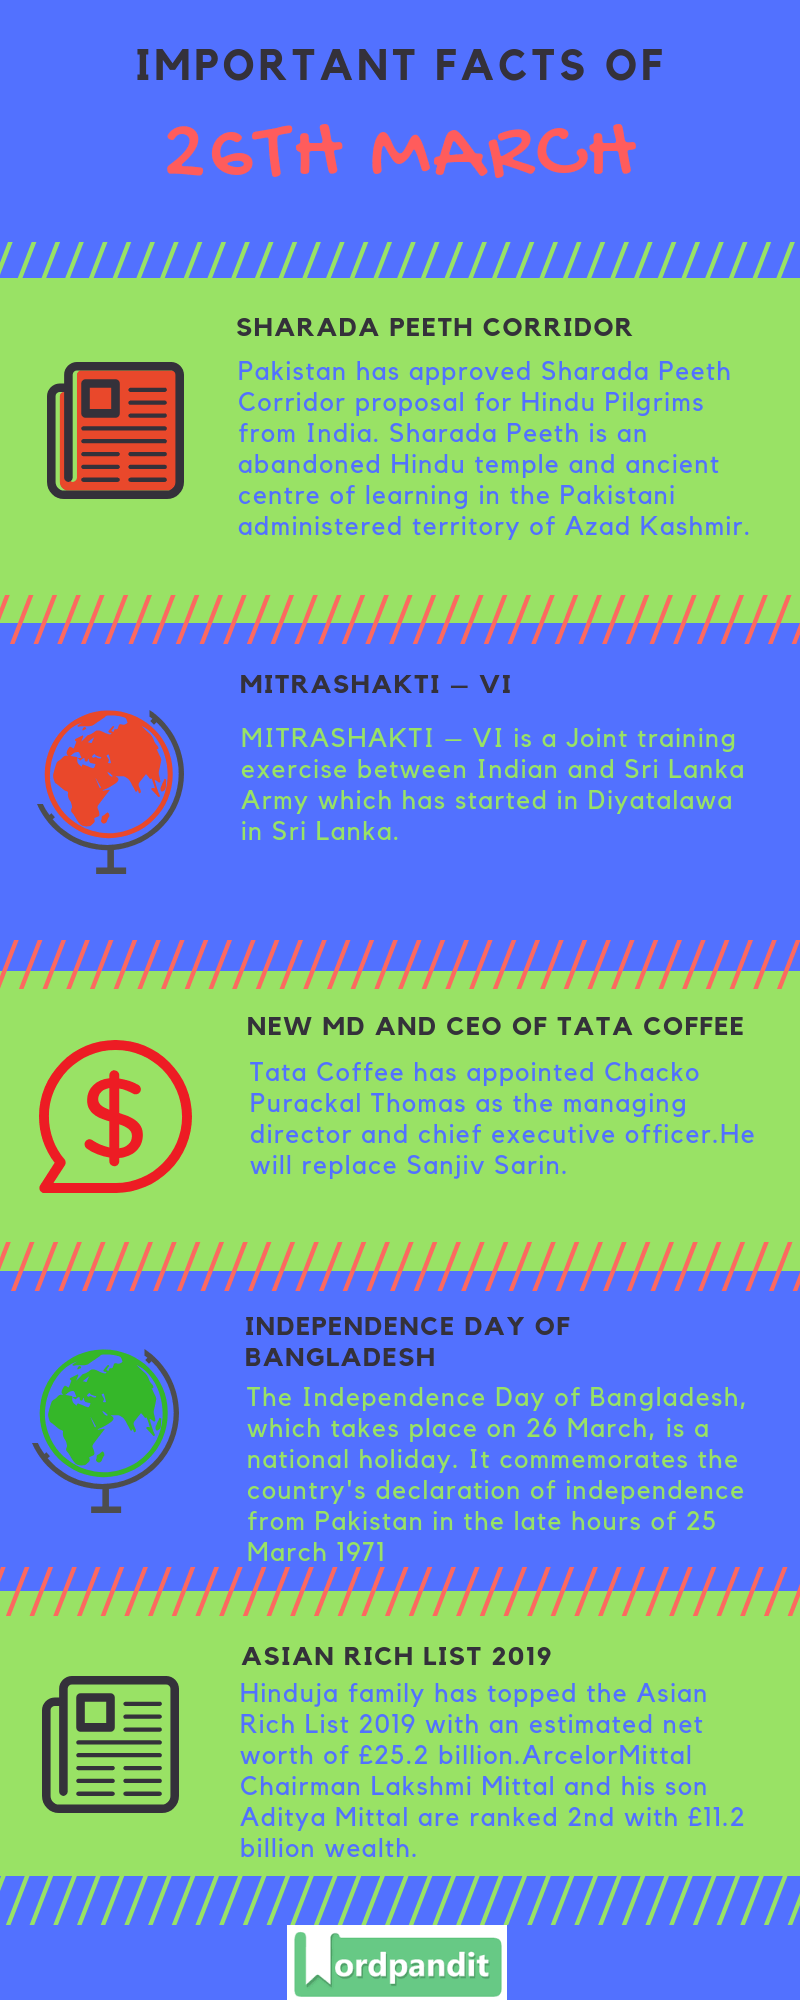 Daily Current Affairs 26 March 2019 Current Affairs Quiz 26 March 2019 Current Affairs Infographic